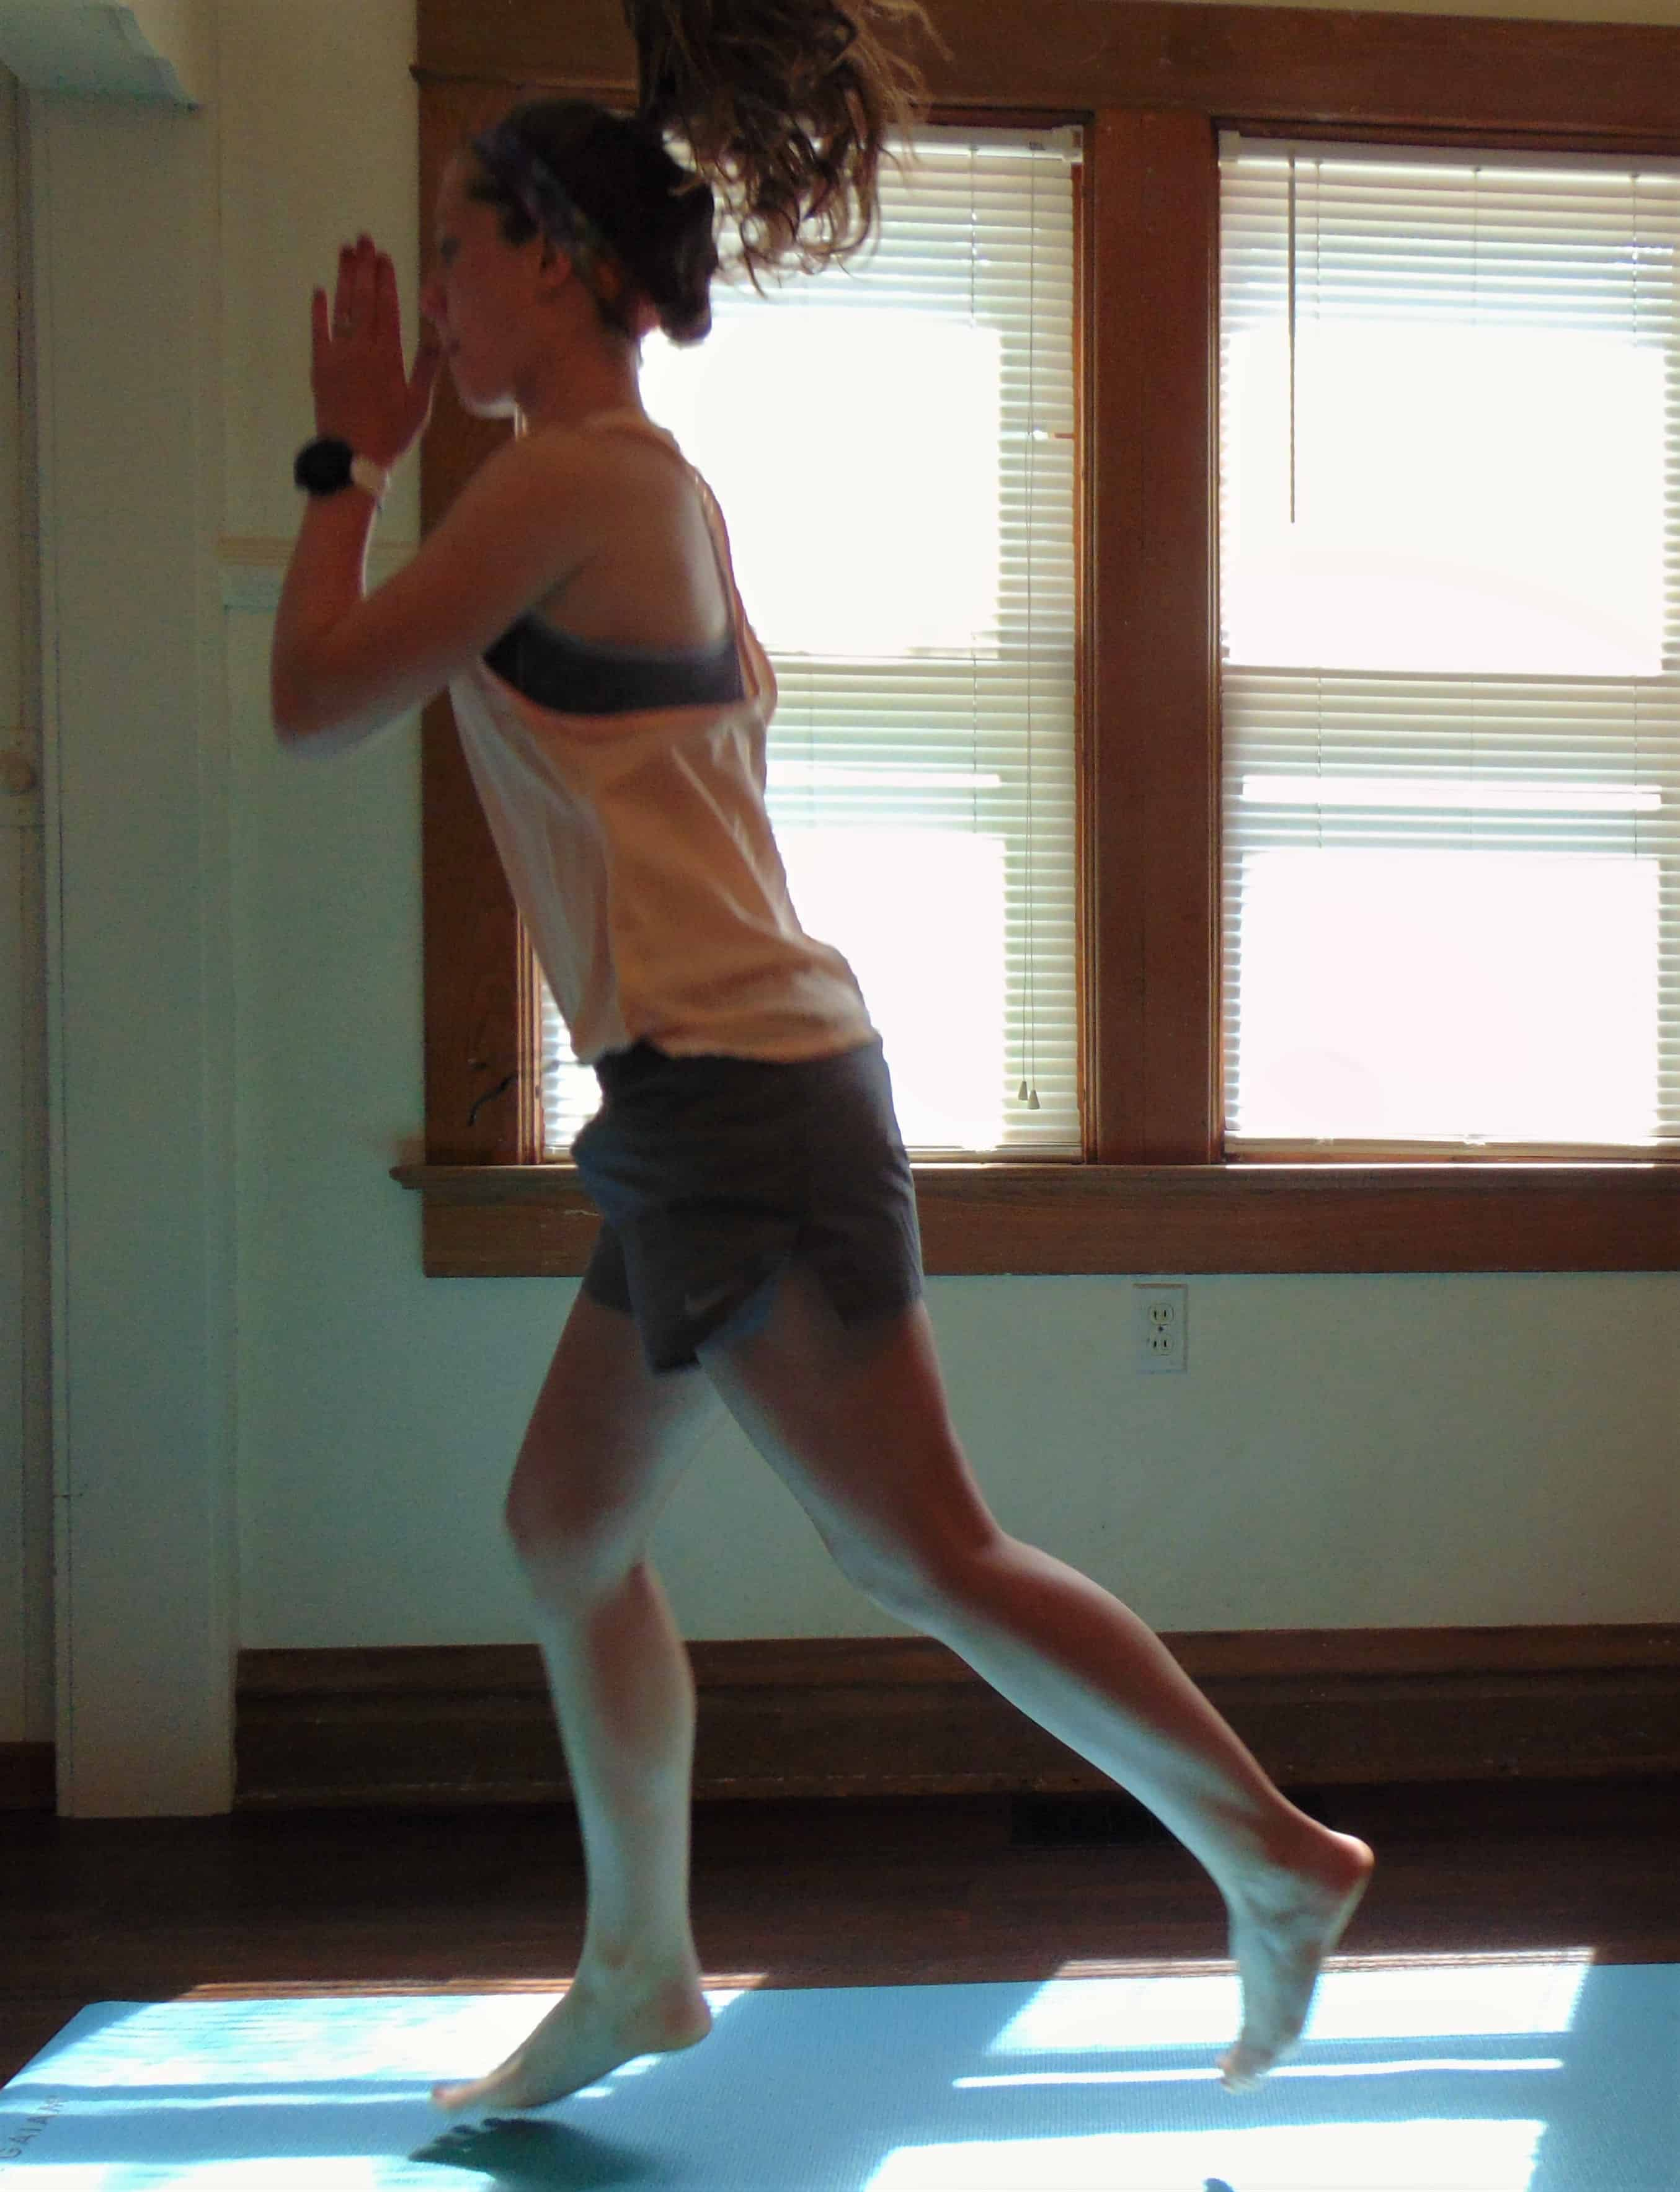 This 30 minute full body at home HIIT workout combines the ultimate cardio moves for an intense workout. With no equipment needed, you can burn calories right at home in your living room. This fat burning workout is the perfect full body routine for summer. Check out these hiit exercises today!